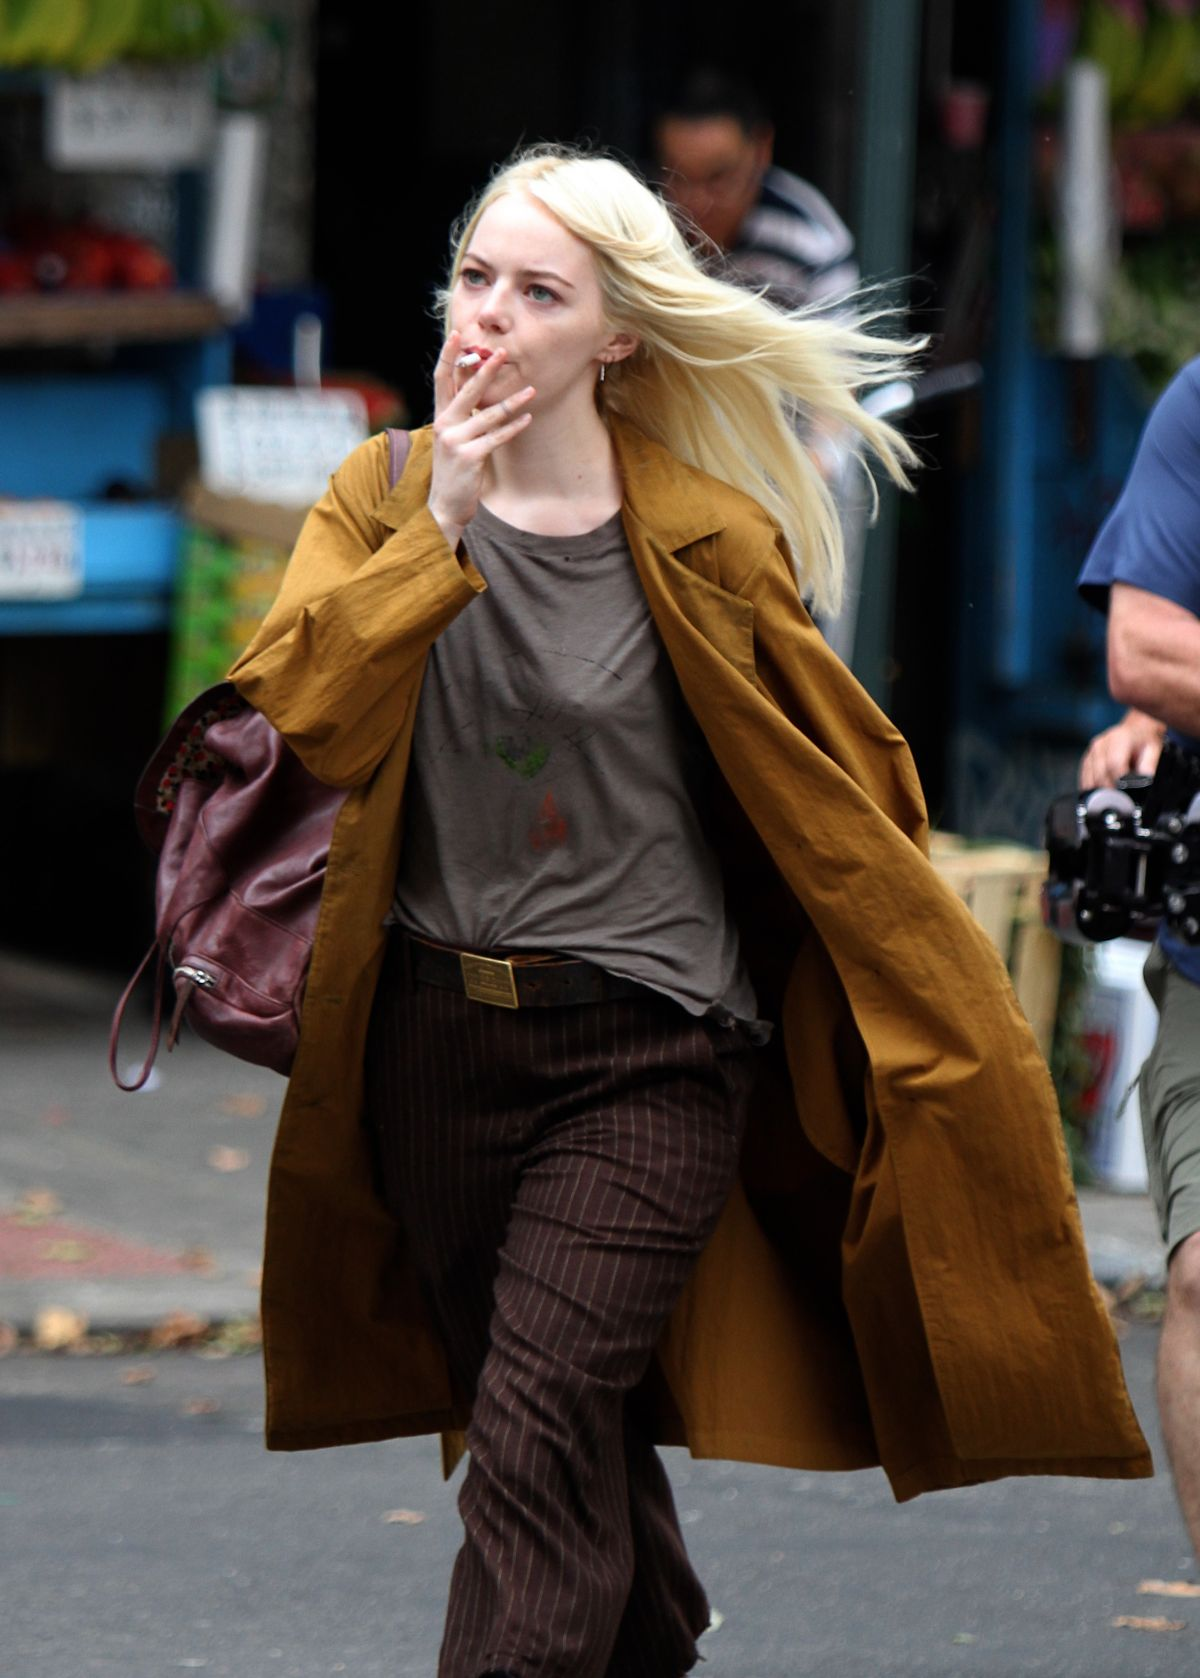 Emma stone shooting scenes on the set of maniac in long island nyc nudes (29 photos), Twitter Celebrites images